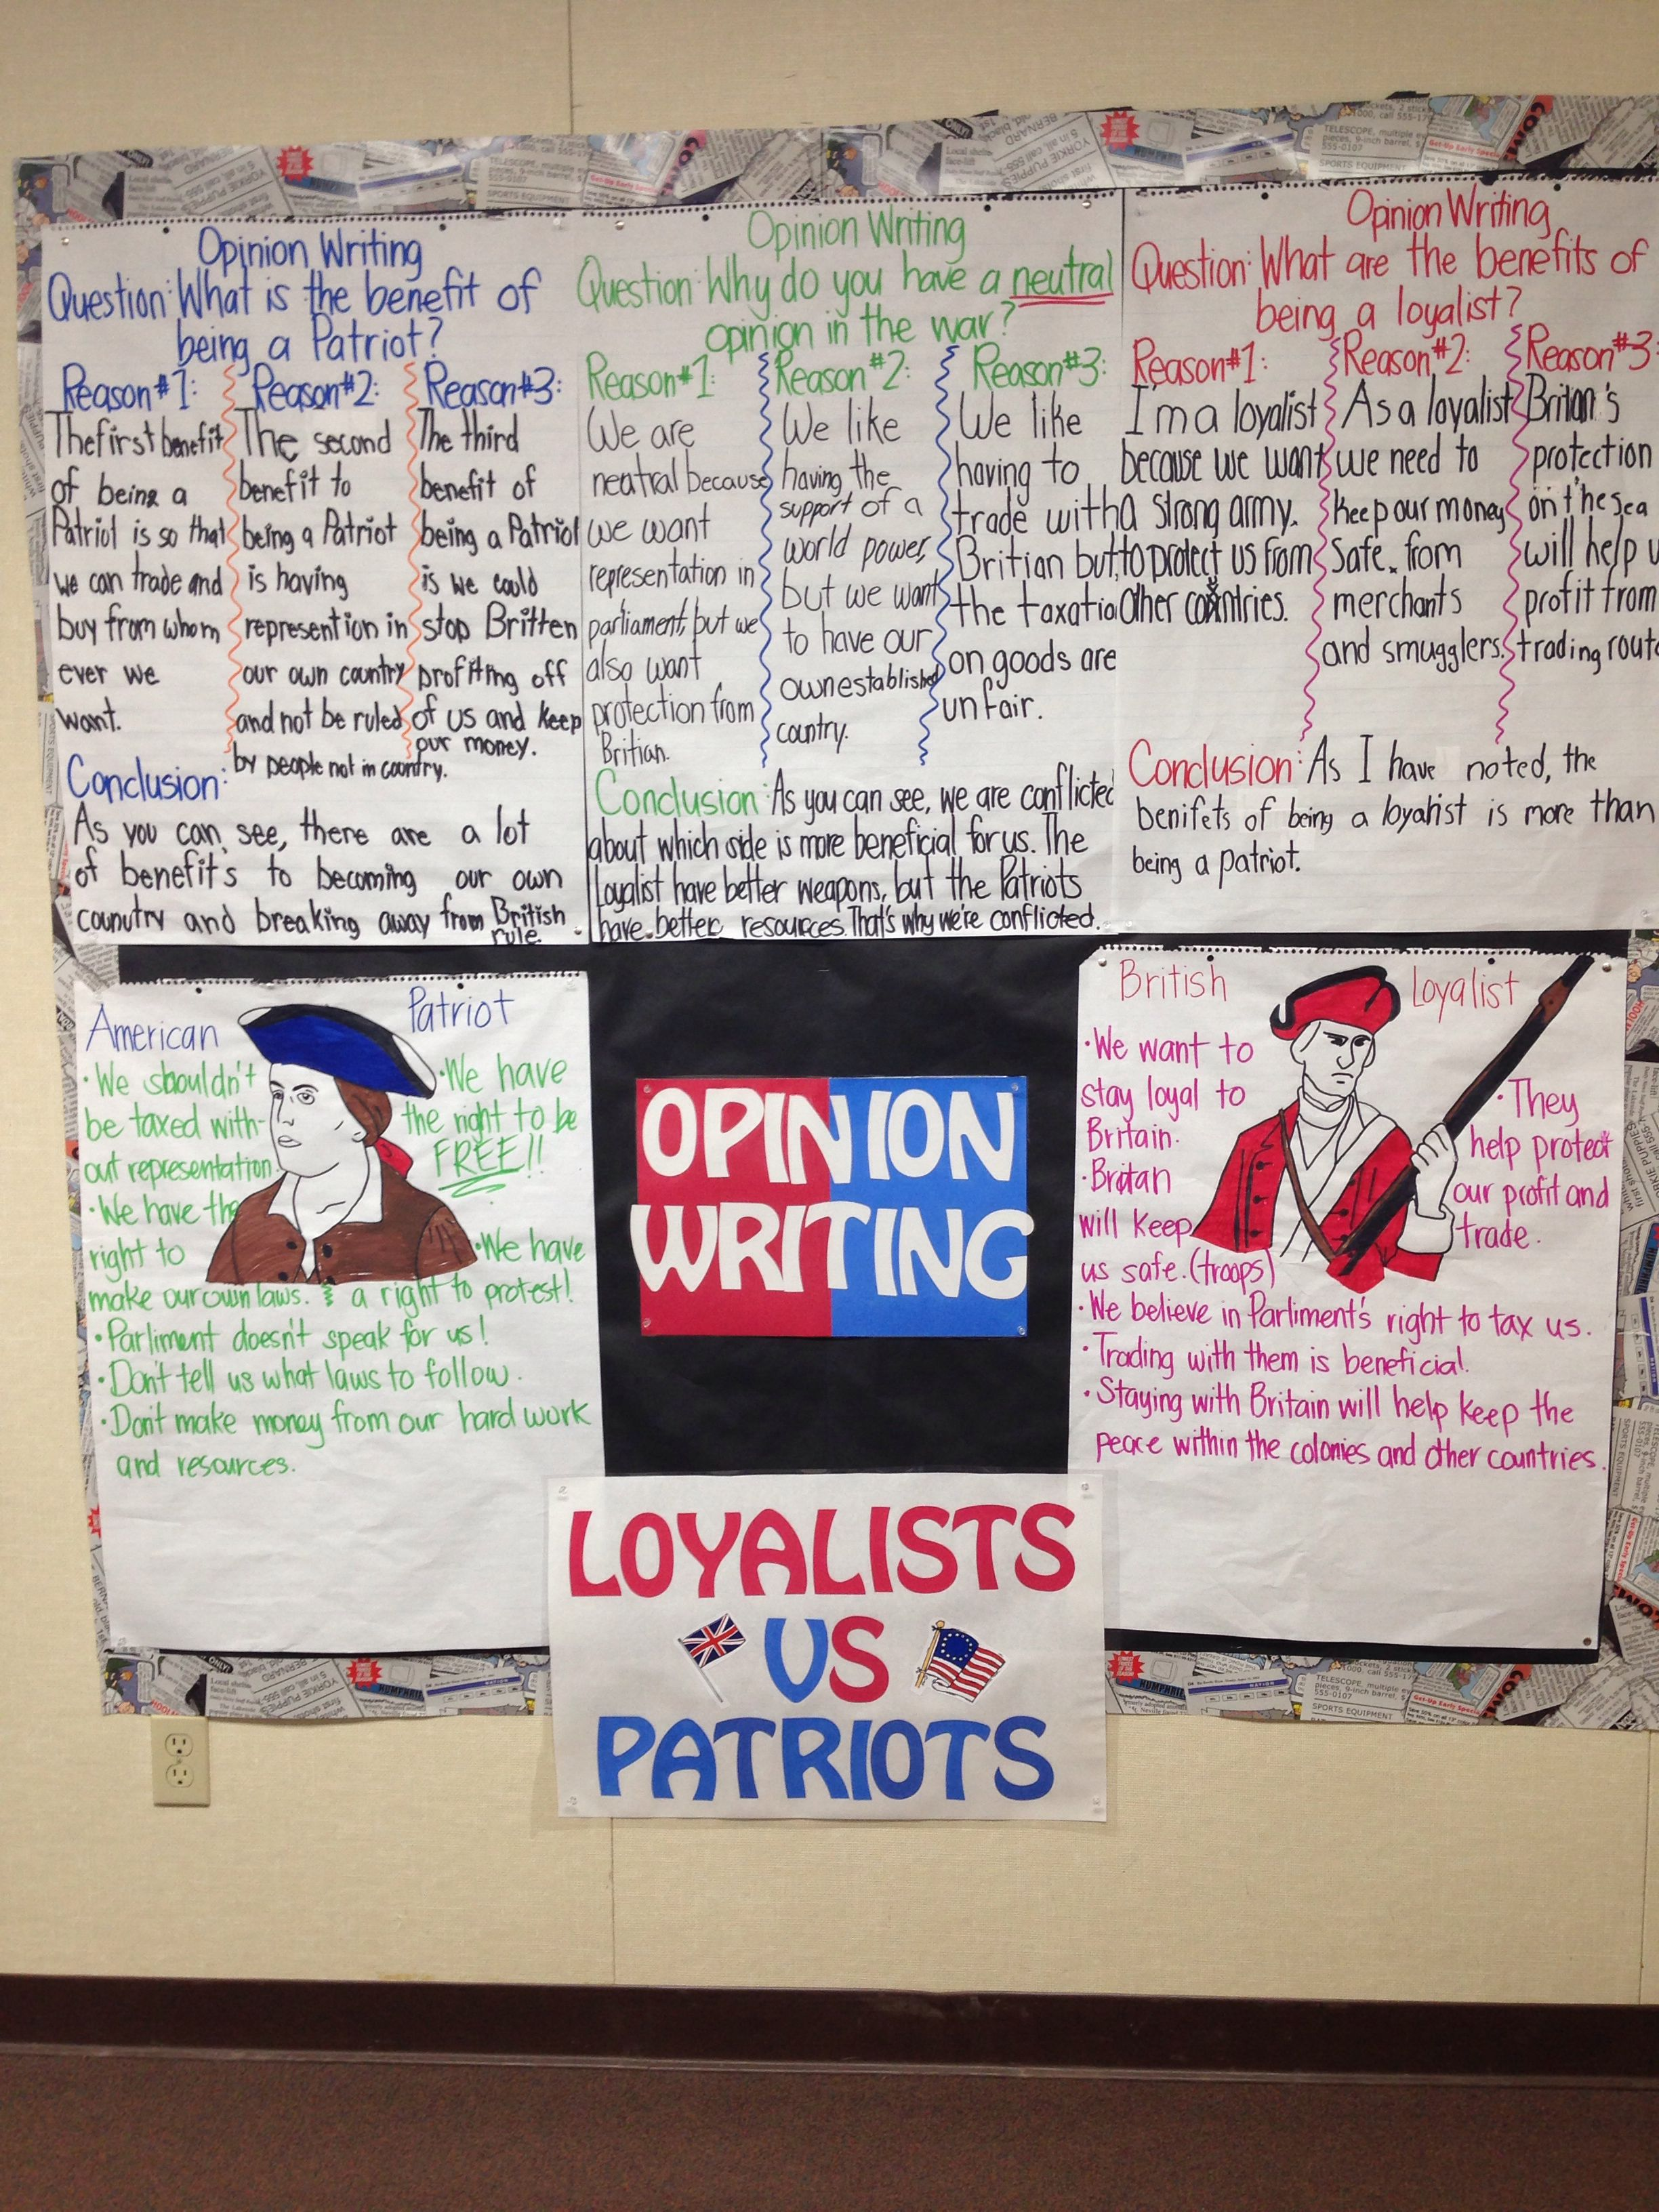 Loyalist Vs Patriots Group Opinion Writing Activity